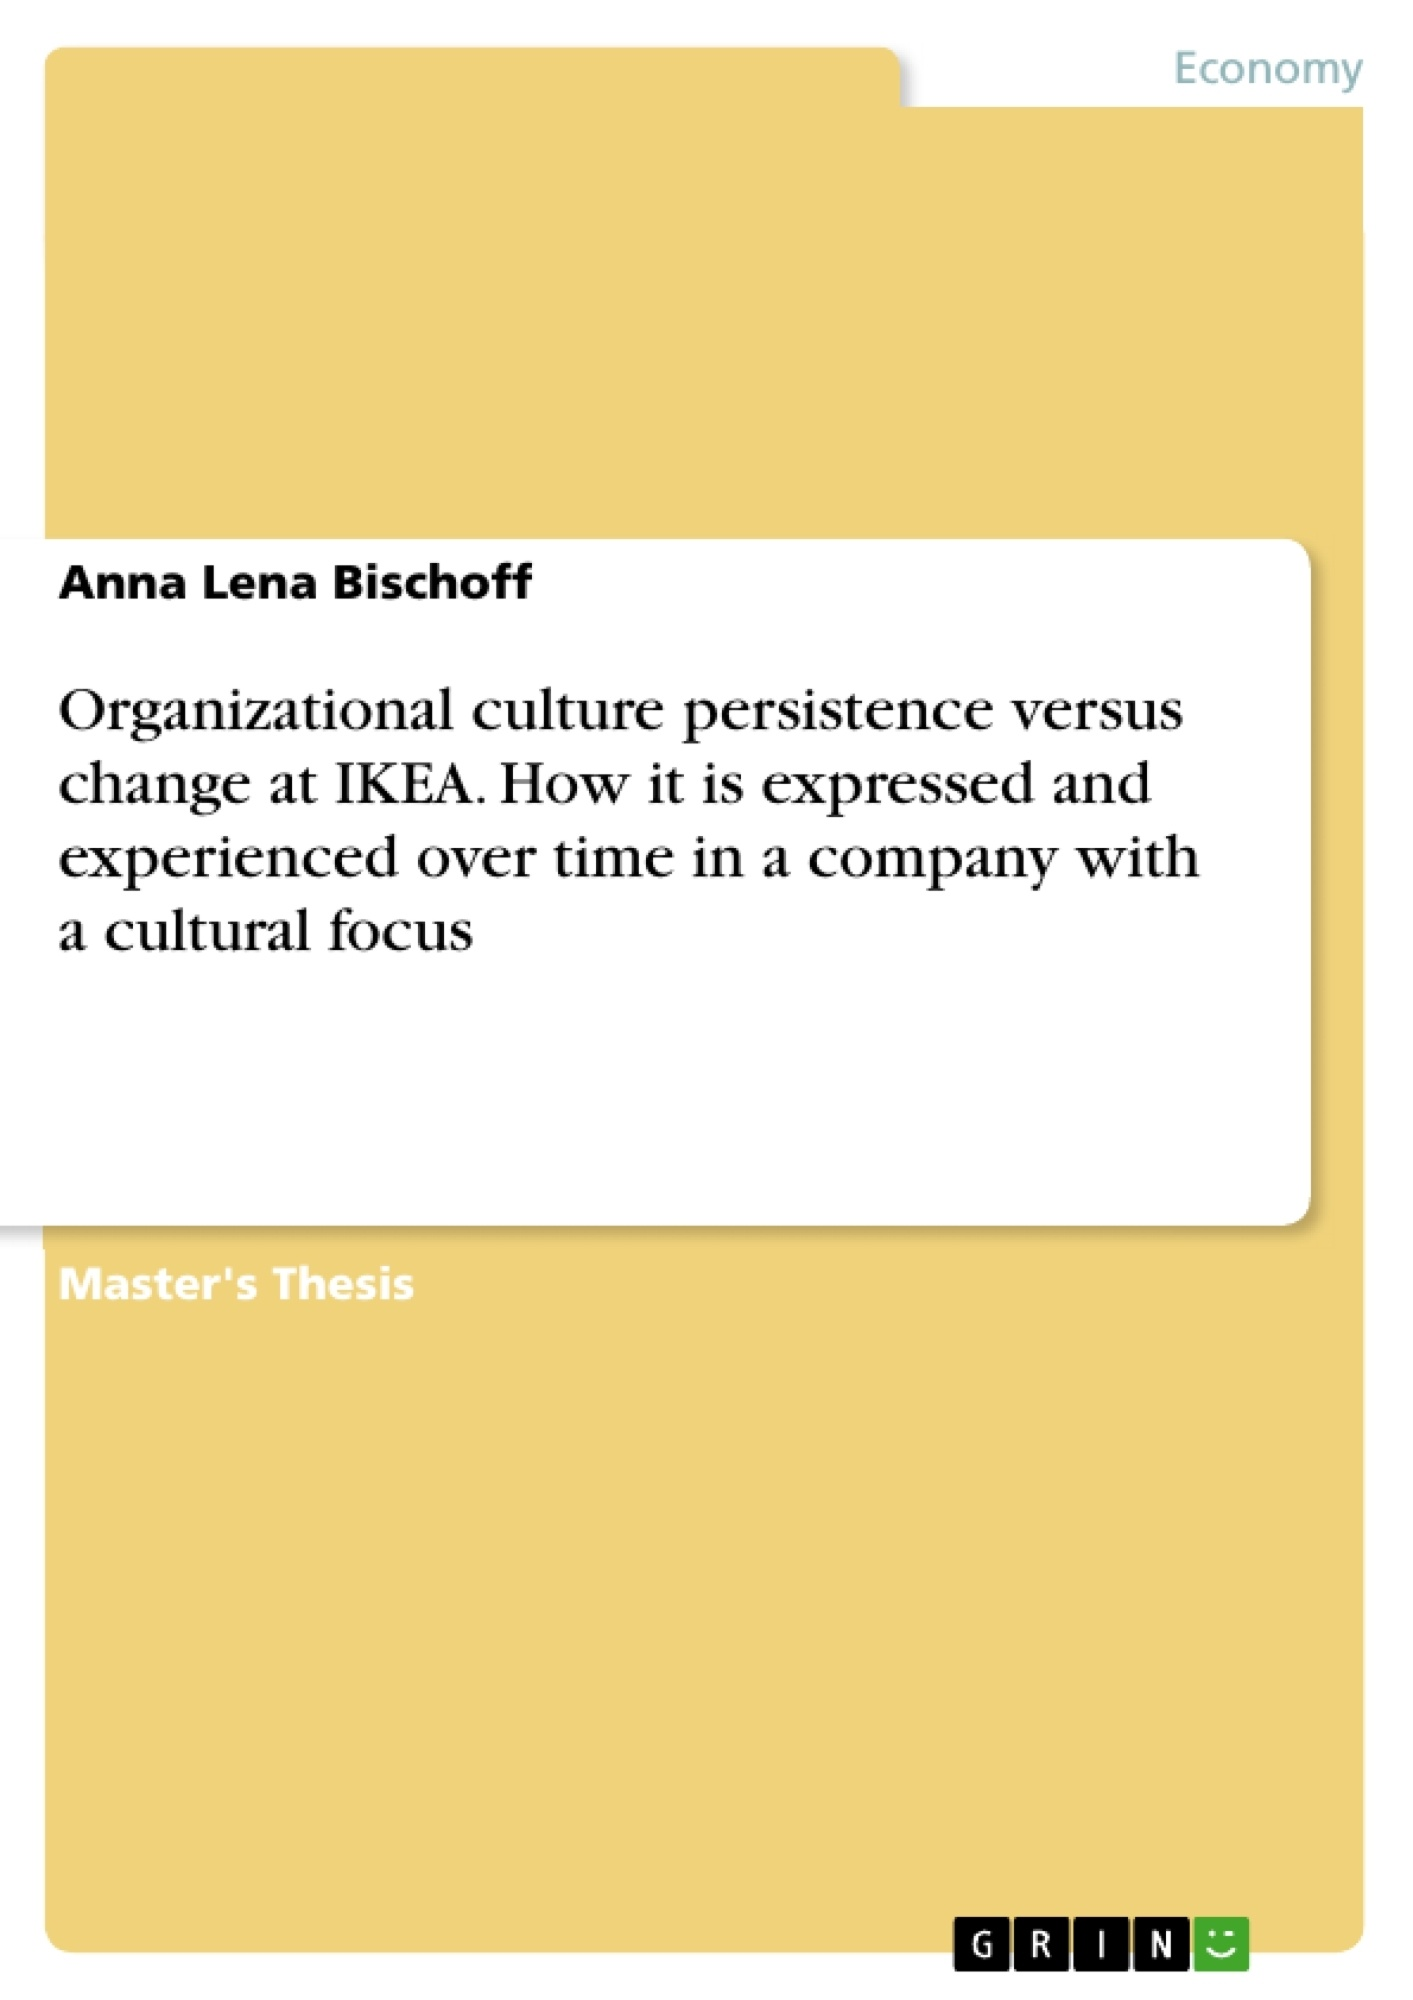 Title: Organizational culture persistence versus change at IKEA. How it is expressed and experienced over time in a company with a cultural focus